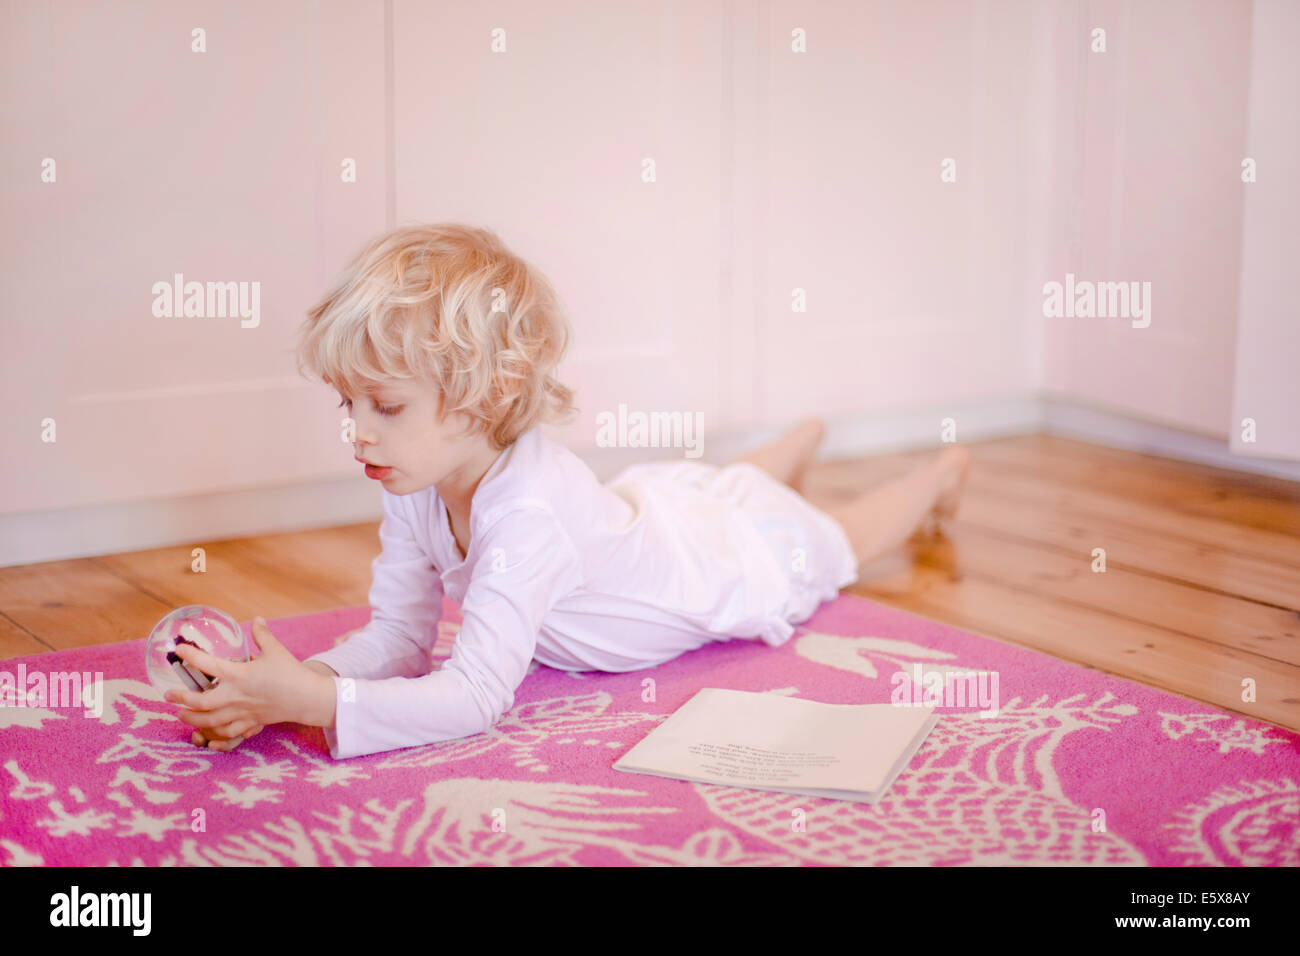 Four year old boy lying on rug gazing at snow globe - Stock Image